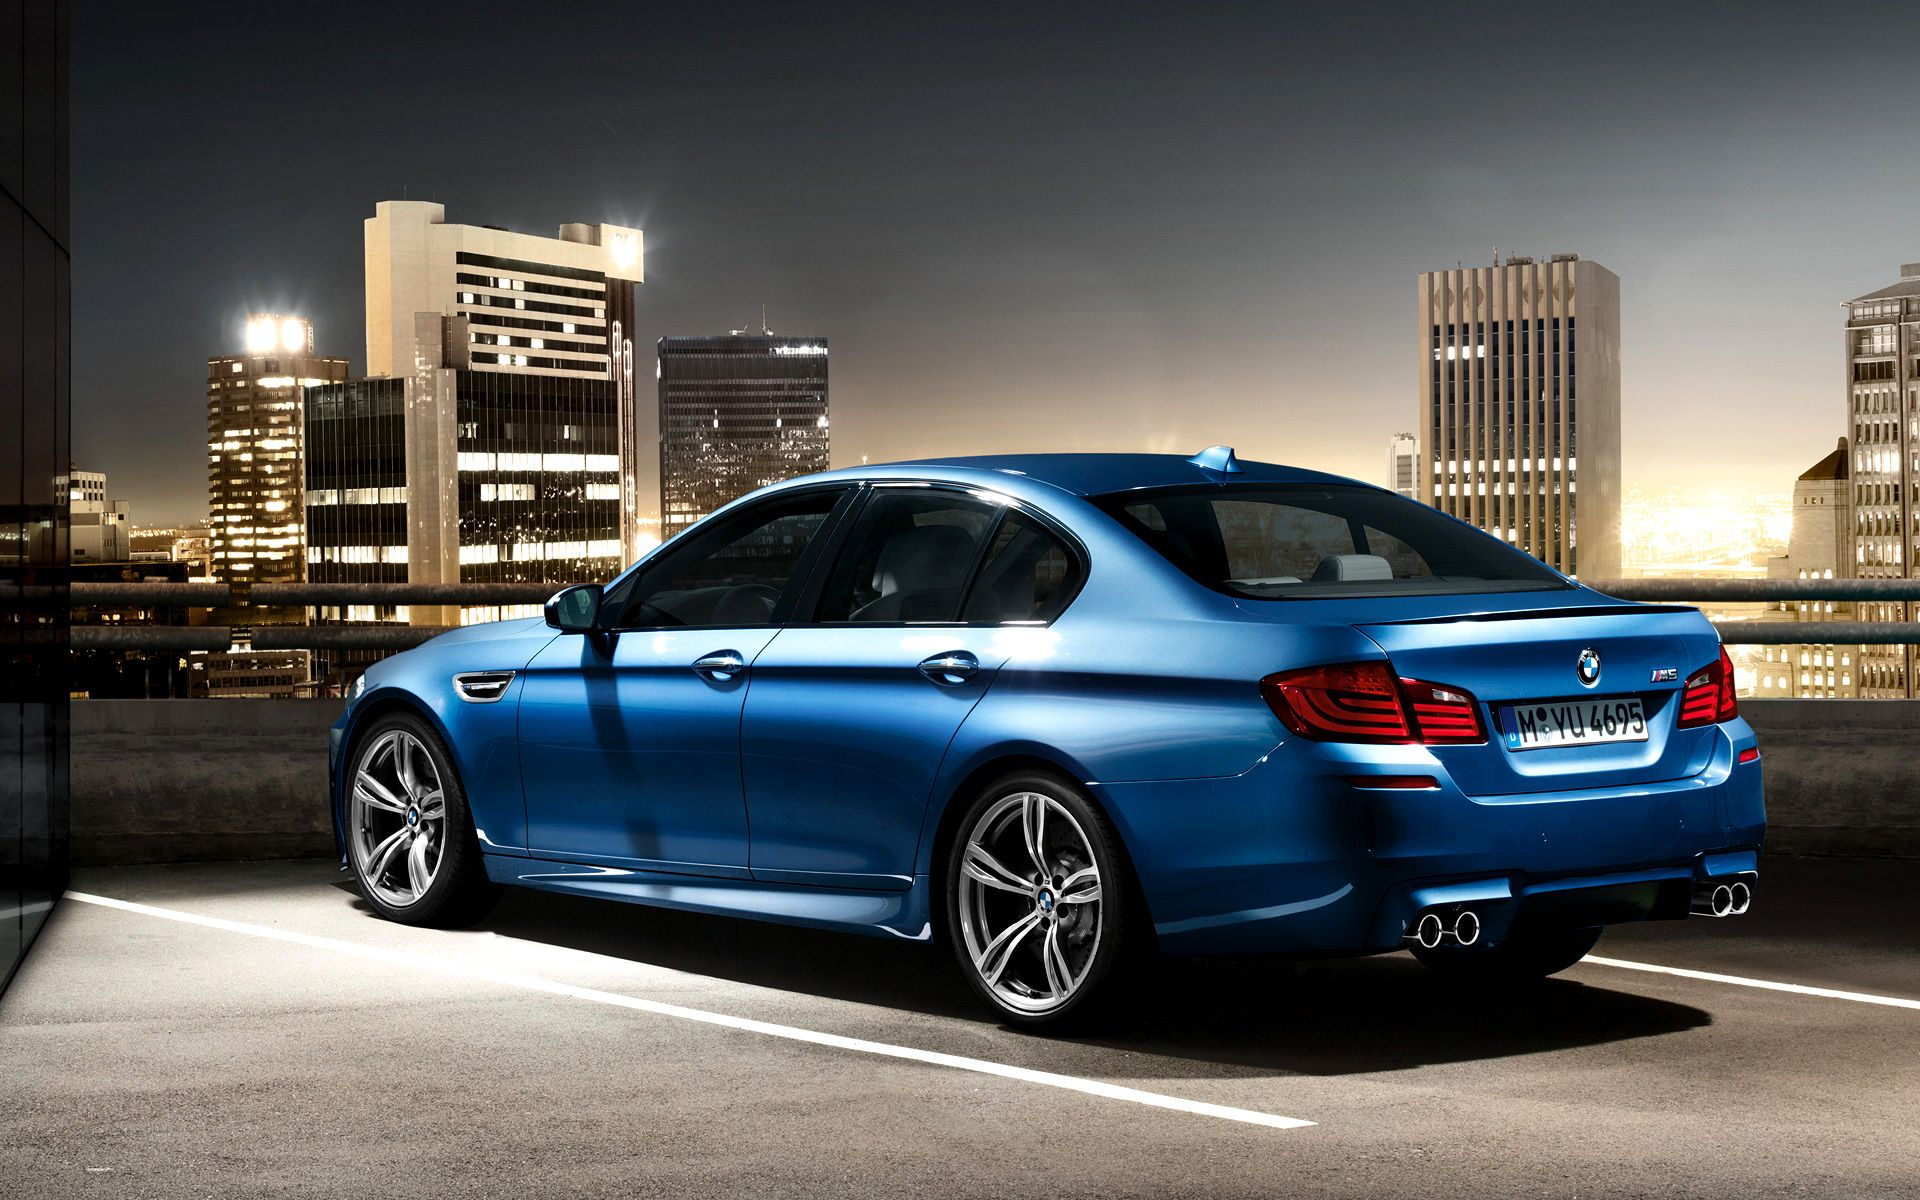 Bmw m5 history of model photo gallery and list of modifications